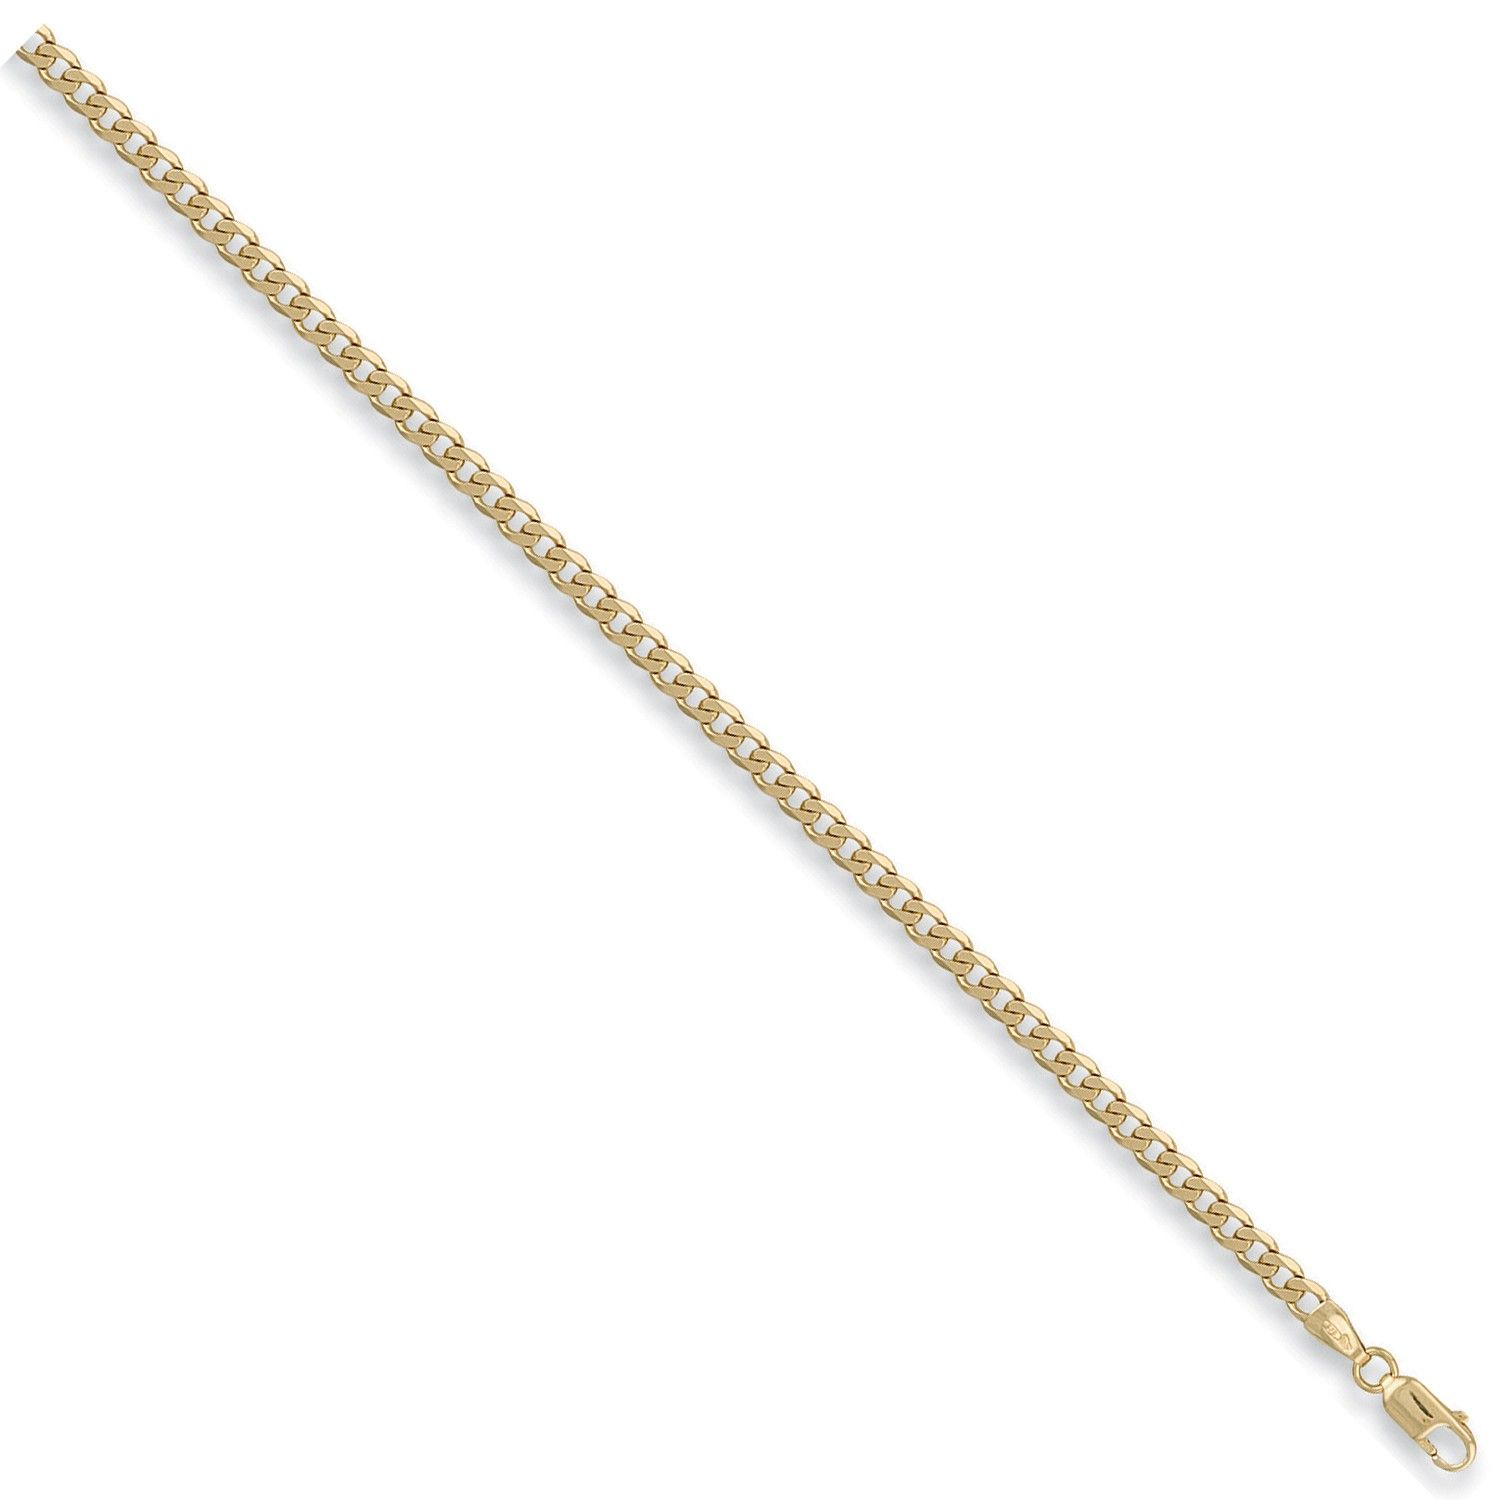 9ct Yellow Gold 4mm Curb Chain